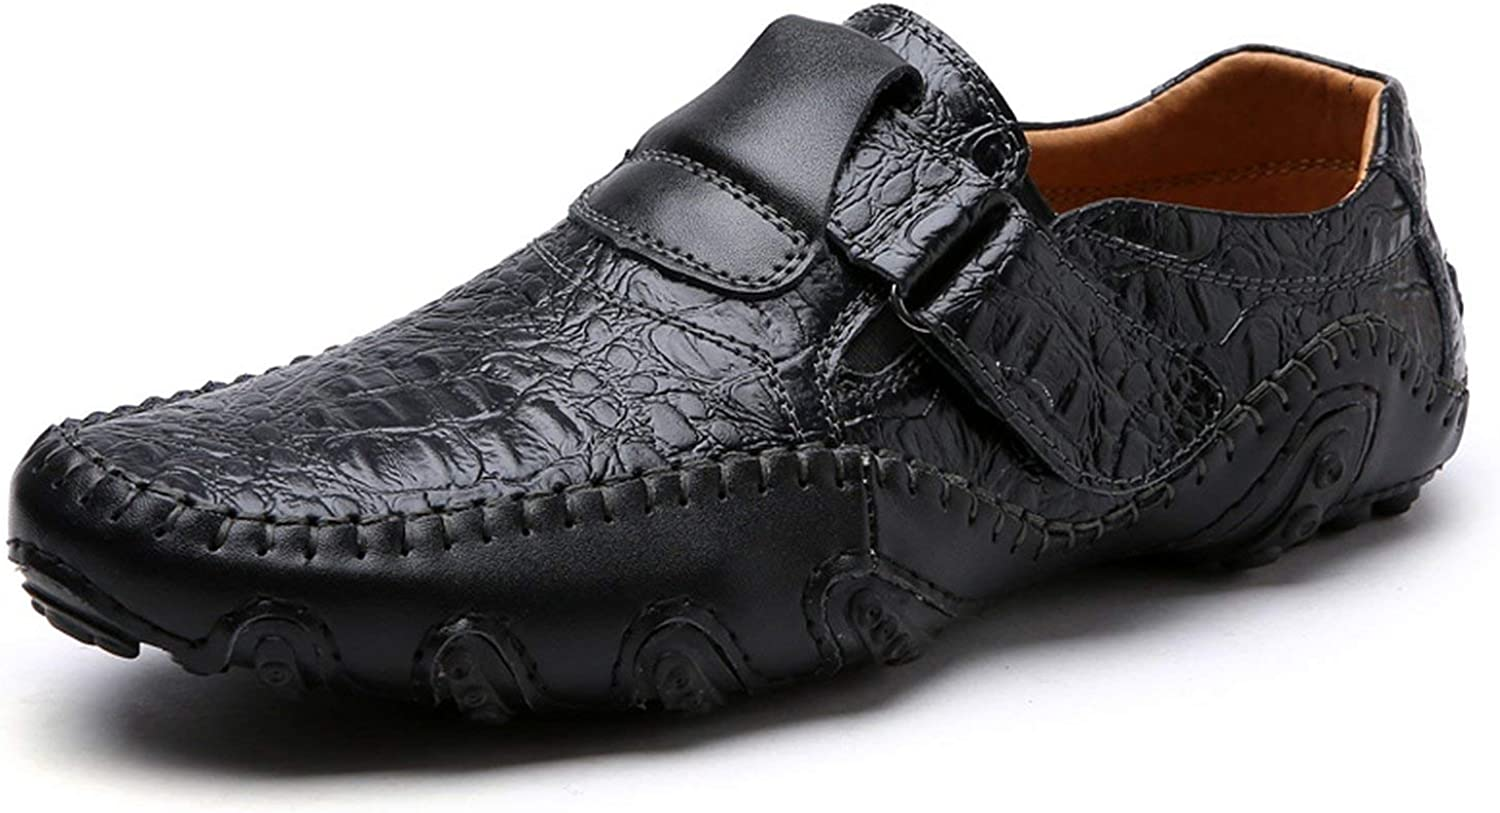 FJ -Direct Luxury Casual skor män Loafers Genuine läder Flat Slip on Designer skor män Mocasins skor Footwear Mane